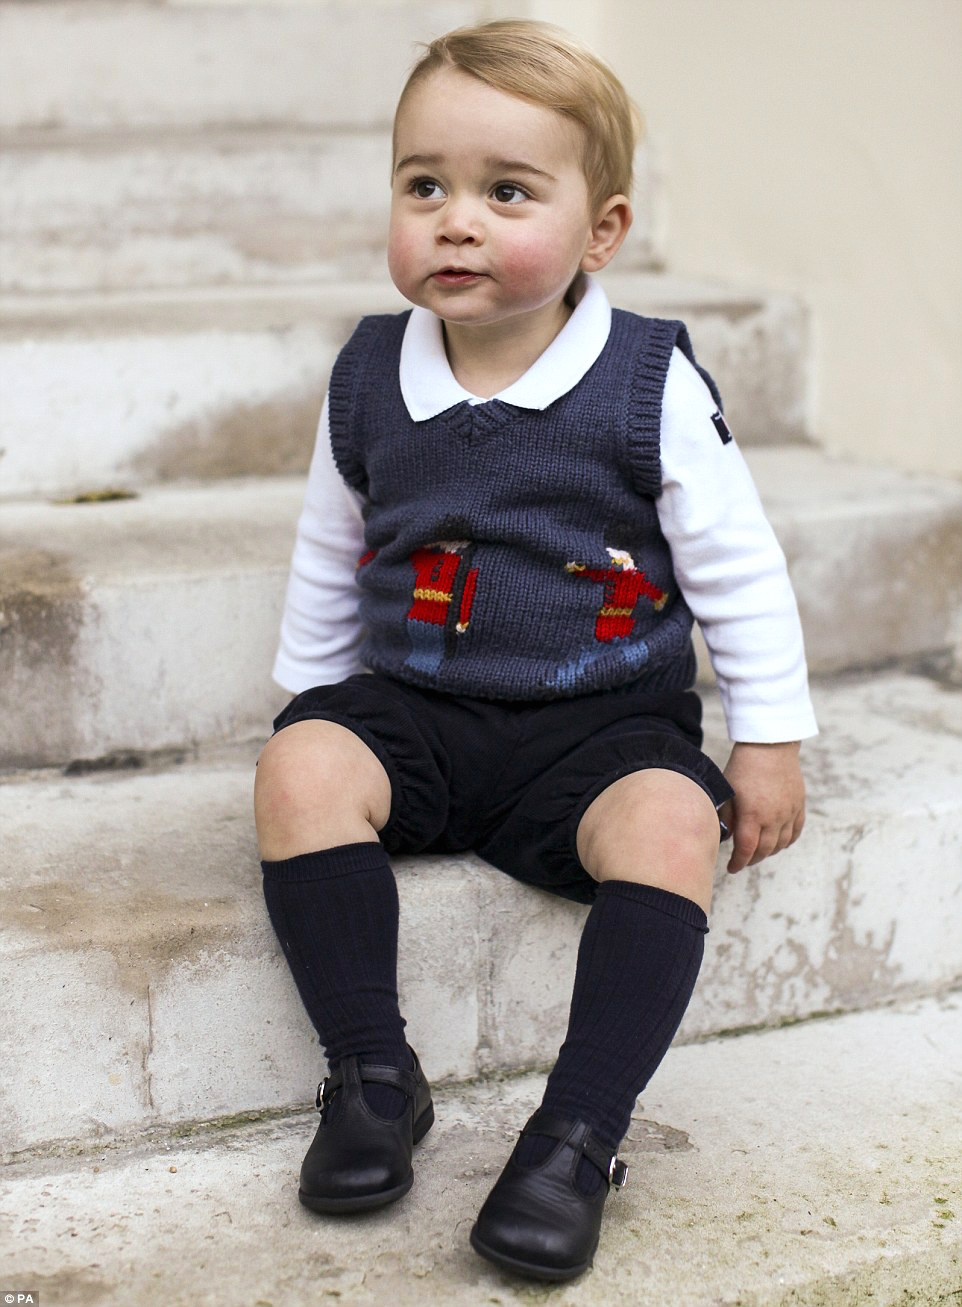 Wings of Whimsy: Prince George of Cambridge